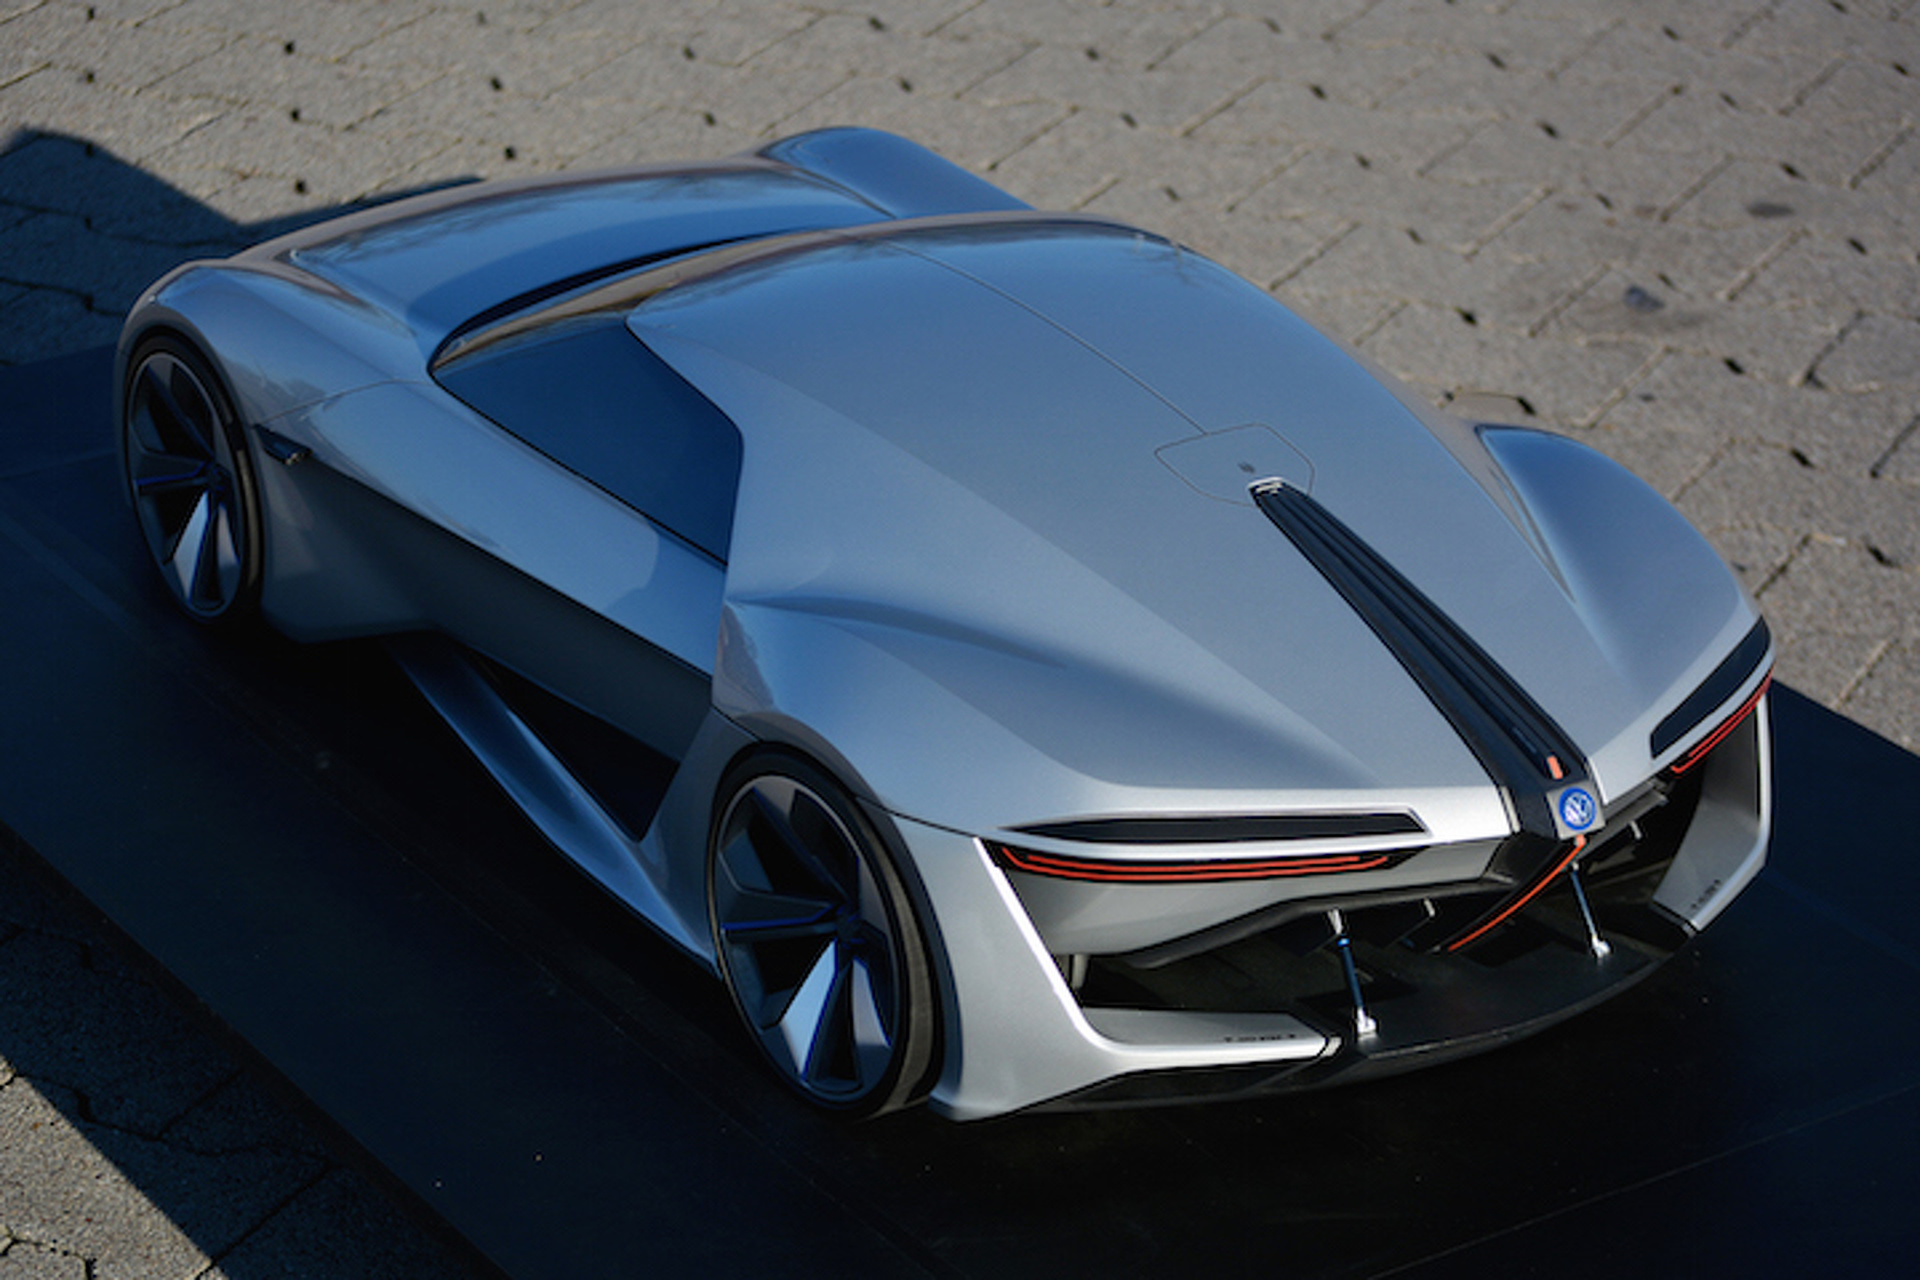 Superior Stunning Volkswagen Sports Car Concept Wants Us To Look Towards The Future